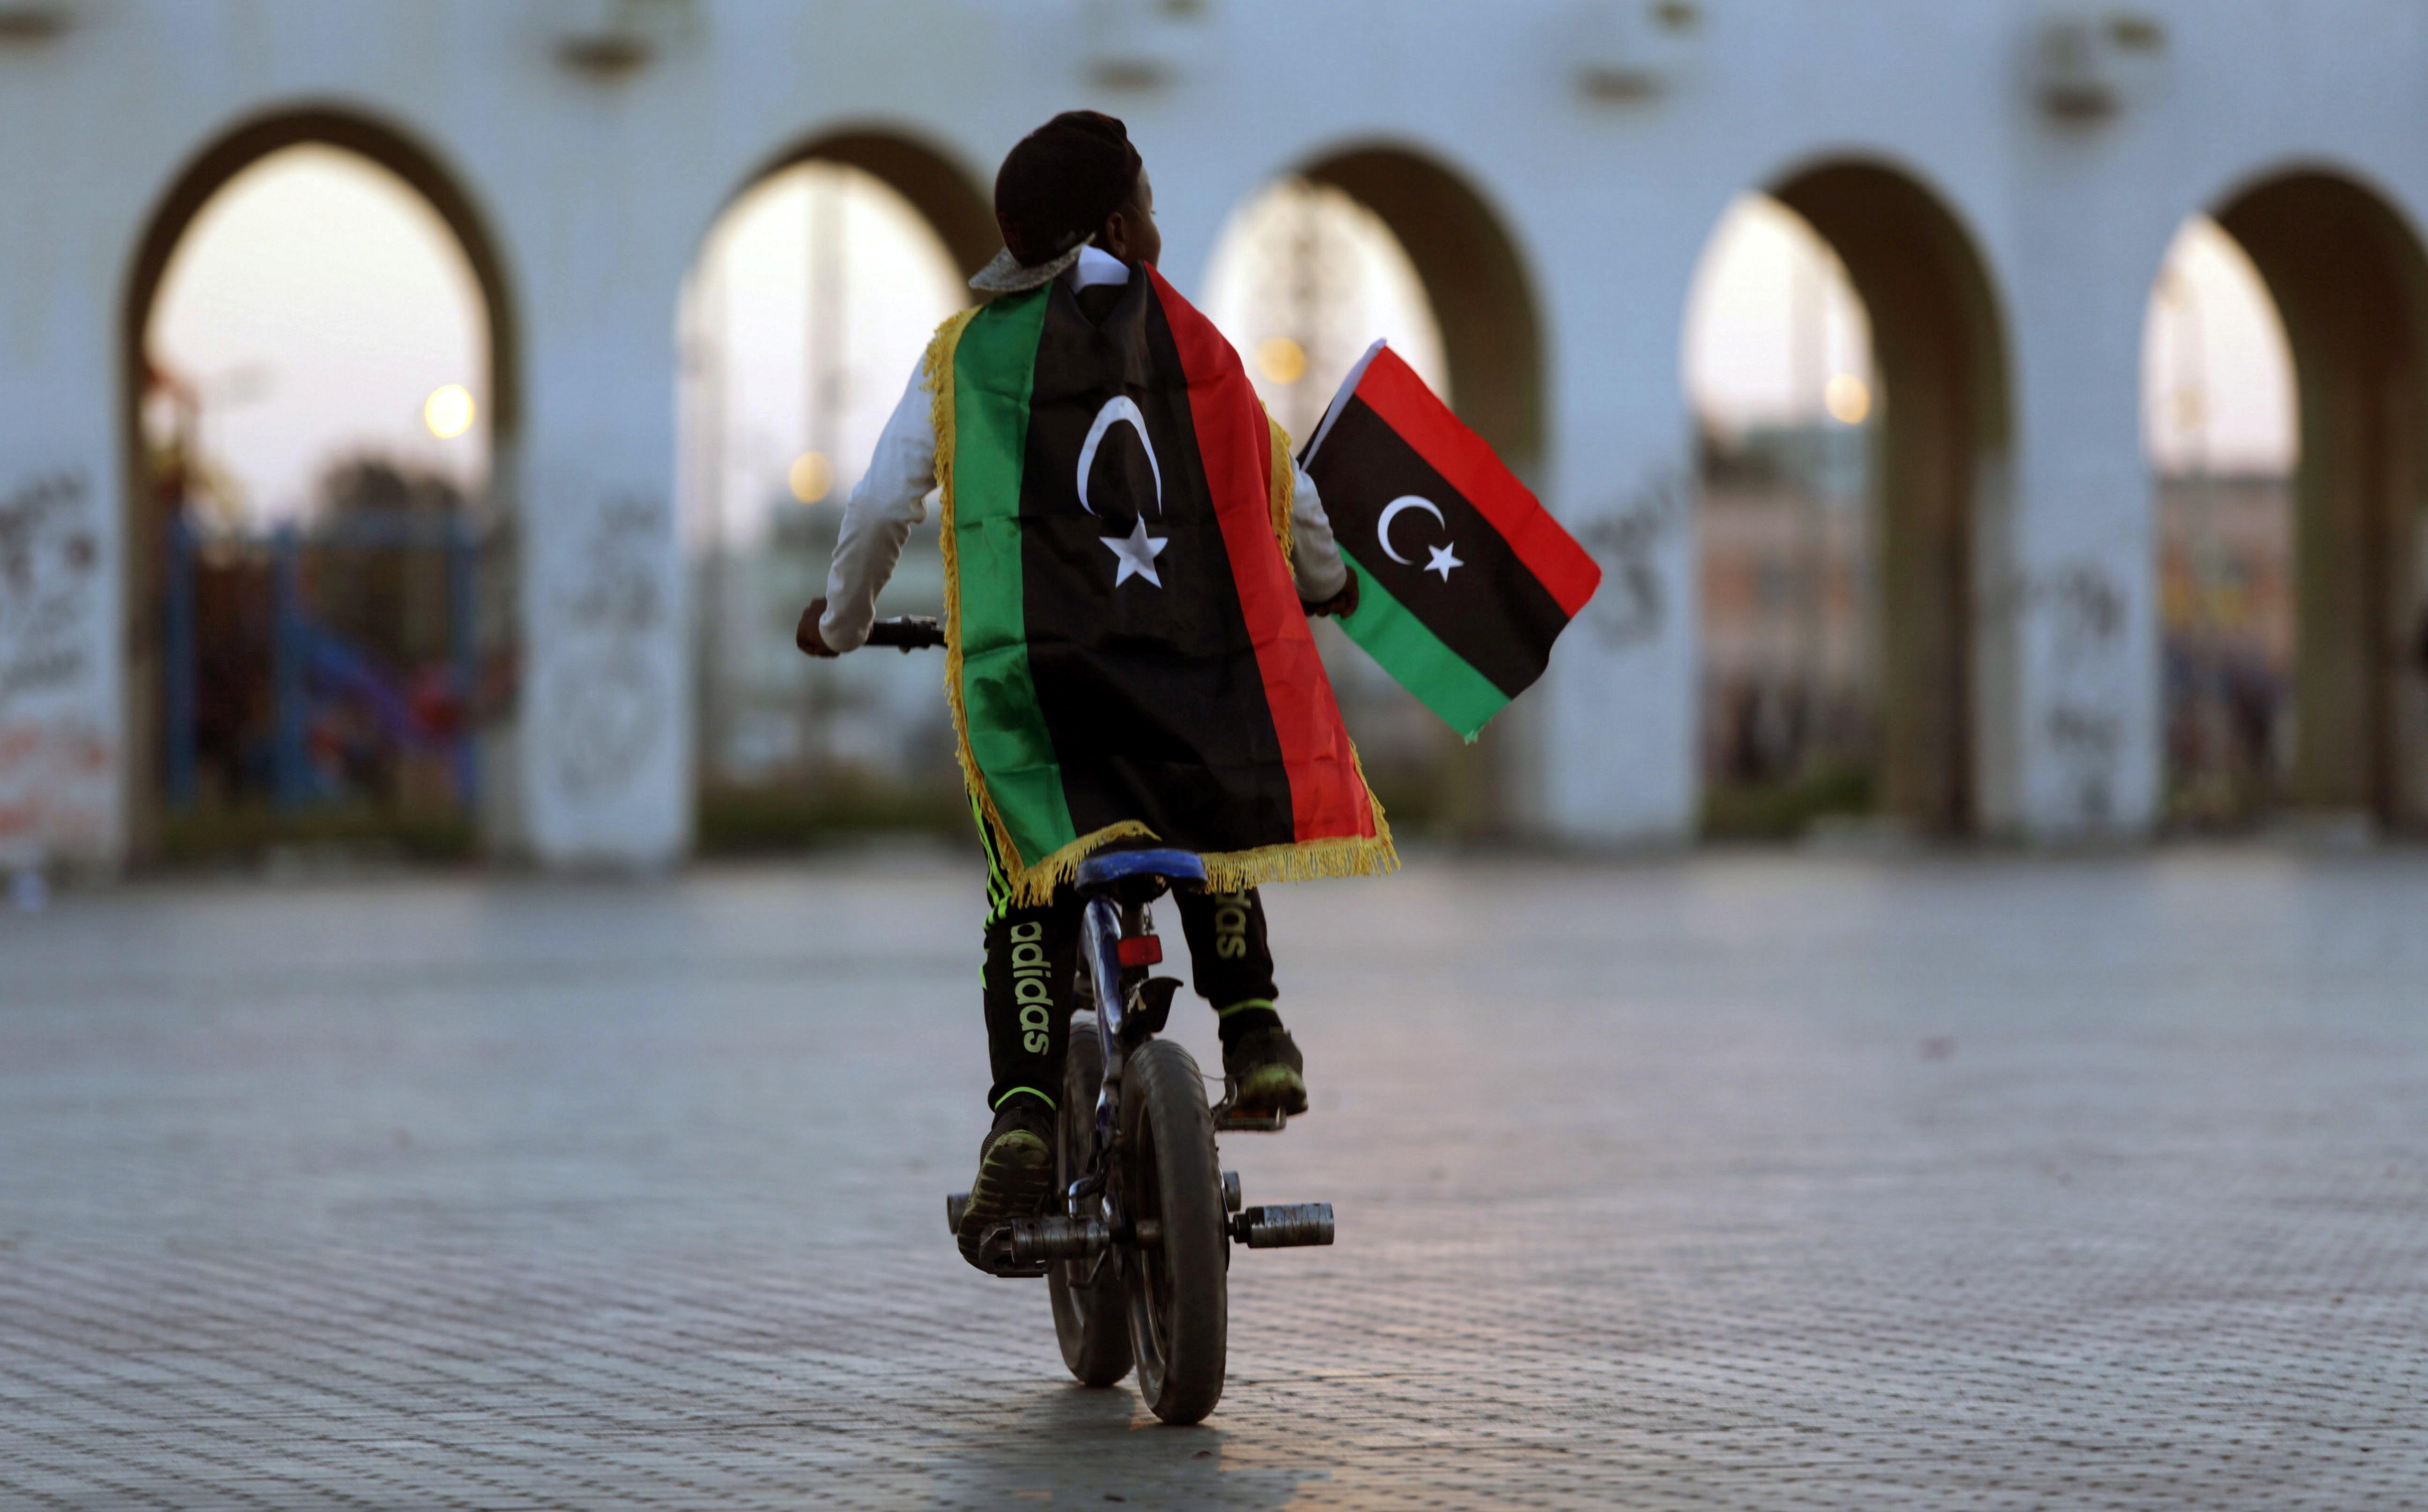 A boy wearing a Libyan flag takes part in a celebration marking the sixth anniversary of the Libyan revolution, in Benghazi, Libya February 17, 2017. REUTERS/Esam Omran Al-Fetori TPX IMAGES OF THE DAY - RTSZ7CB